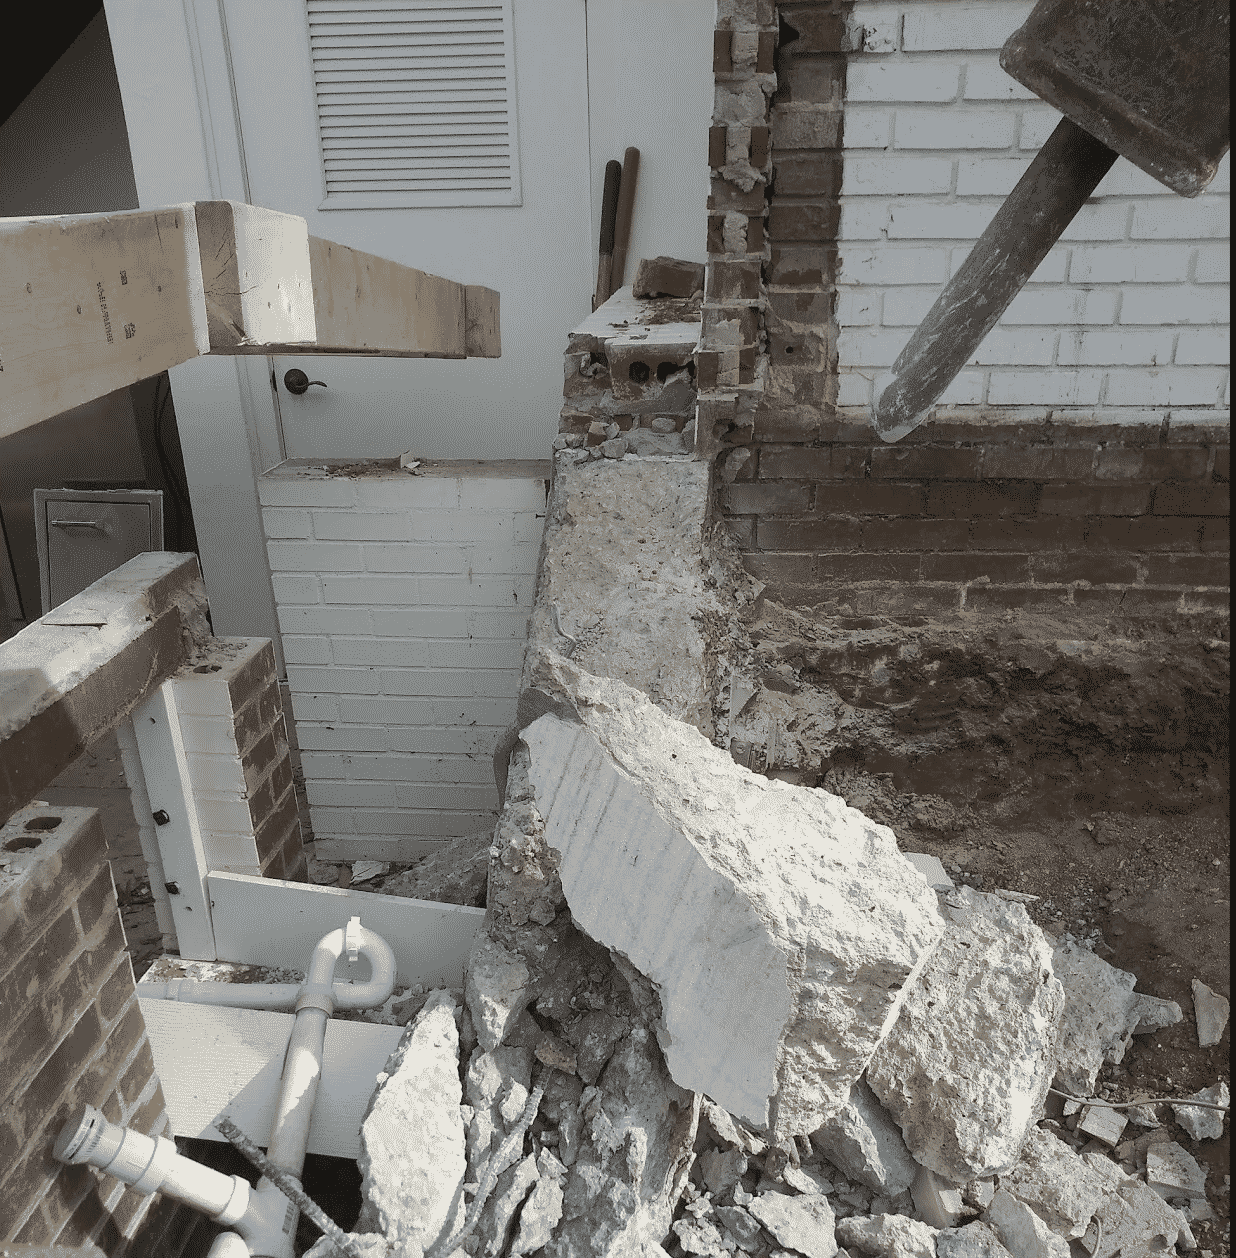 Concrete Foundation Demolition Shot